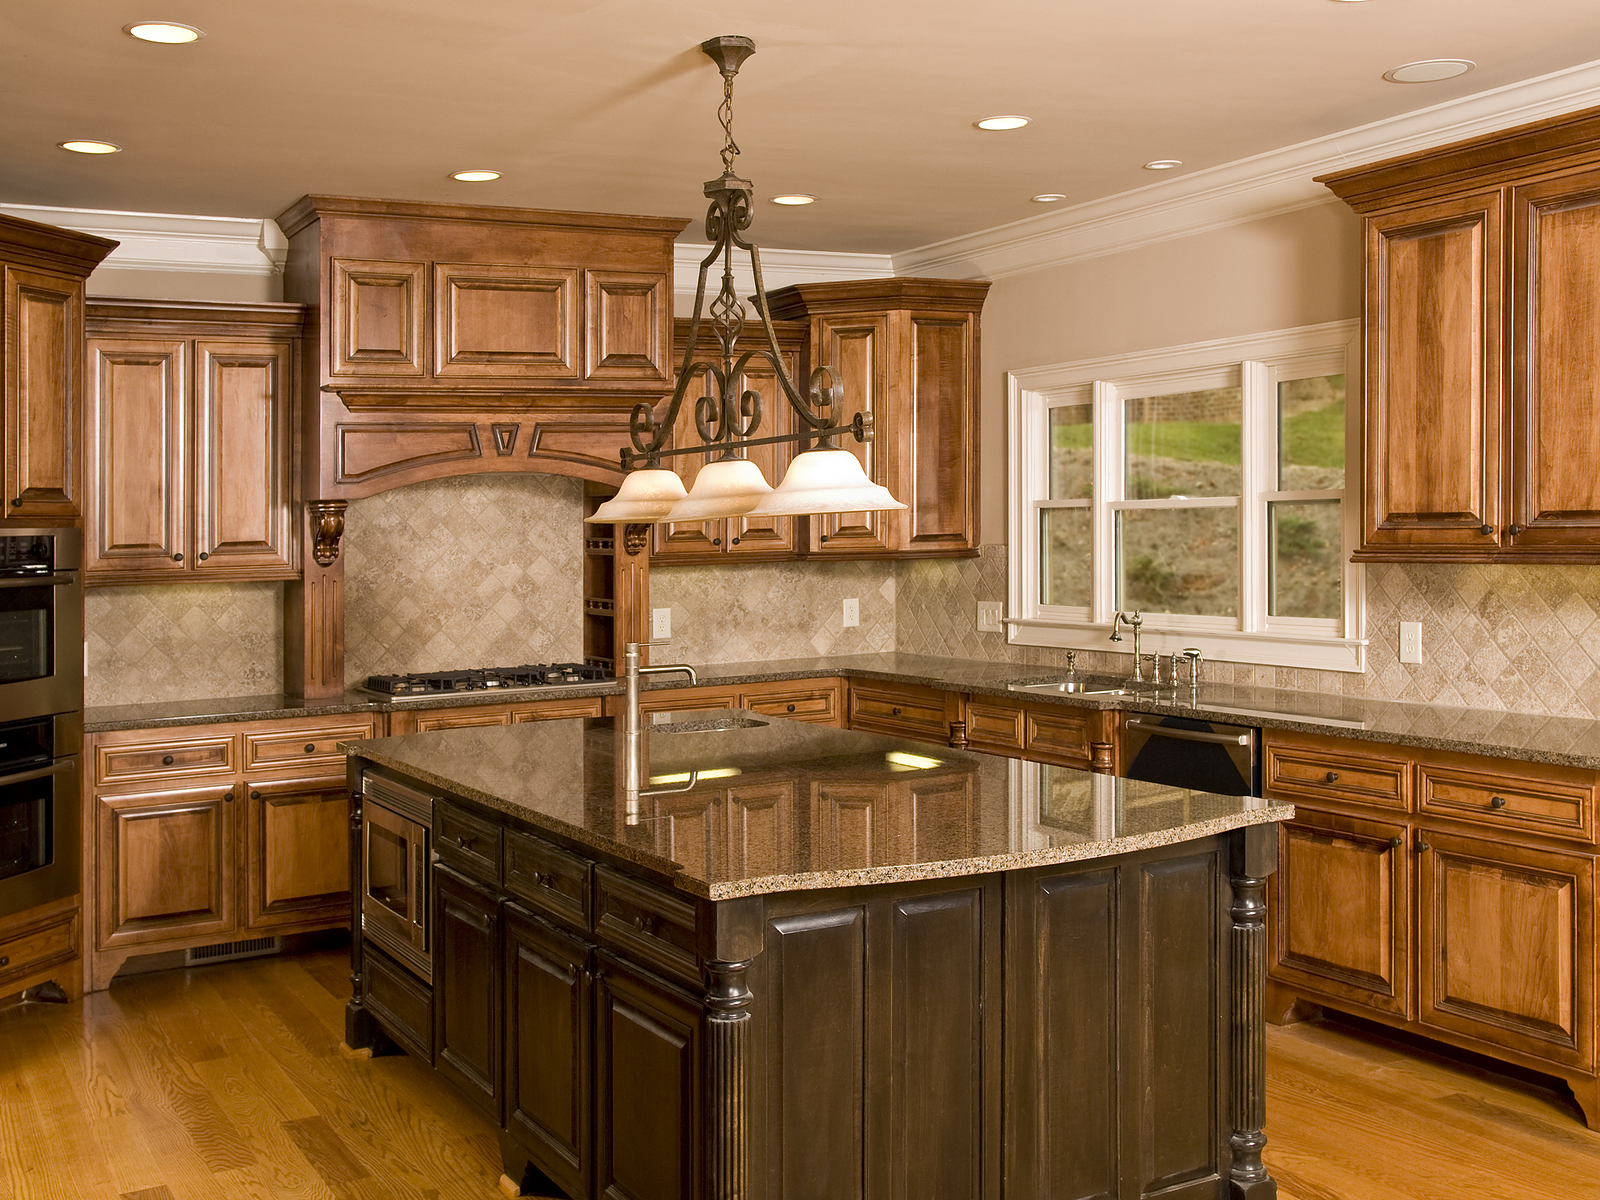 deluxe-design-bigstock-luxury-kitchen-large-cent.jpg